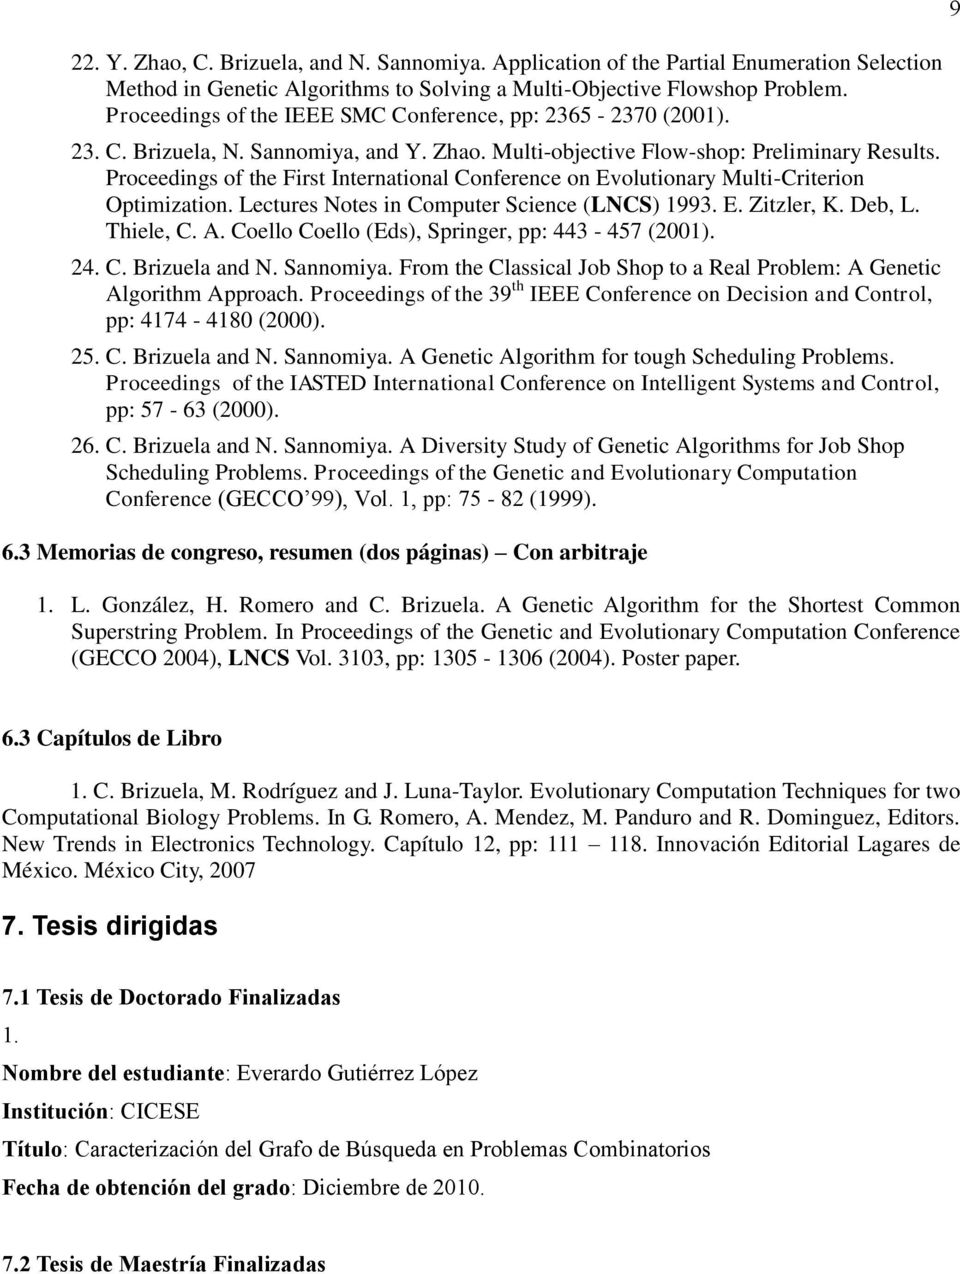 Proceedings of the First International Conference on Evolutionary Multi-Criterion Optimization. Lectures Notes in Computer Science (LNCS) 1993. E. Zitzler, K. Deb, L. Thiele, C. A.